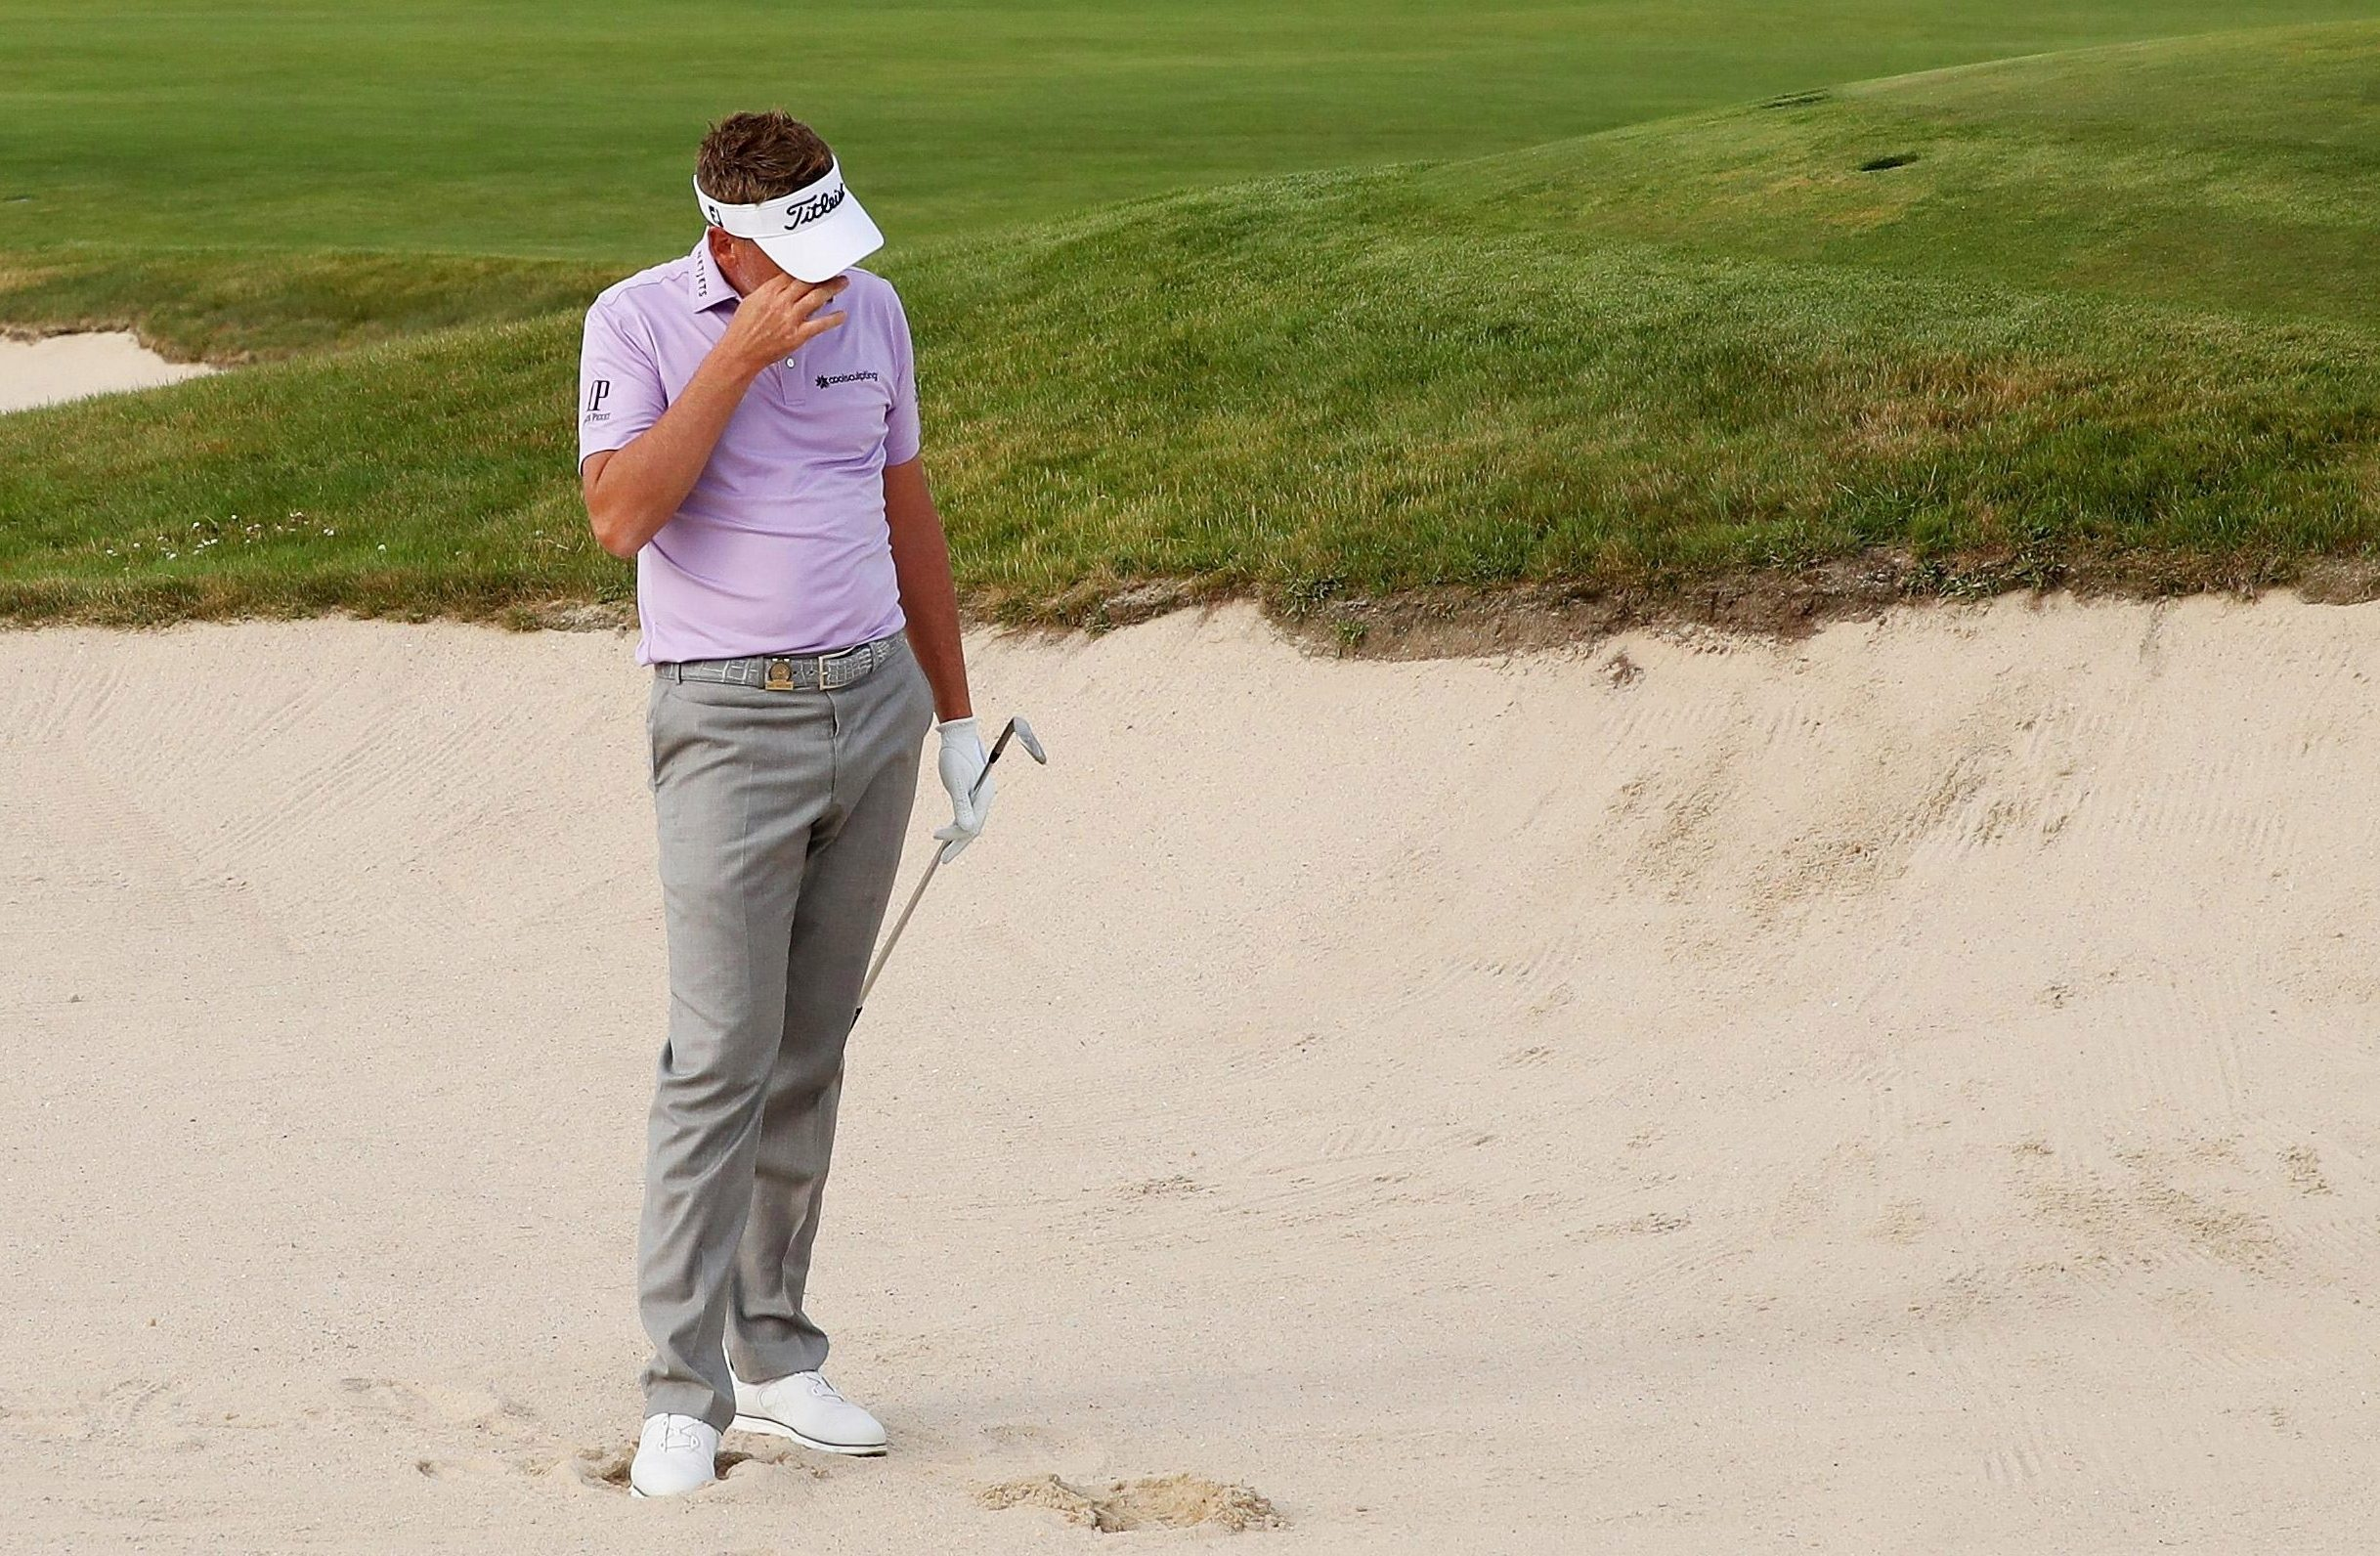 Ian Poulter had a late meltdown when he was just one shot off the lead